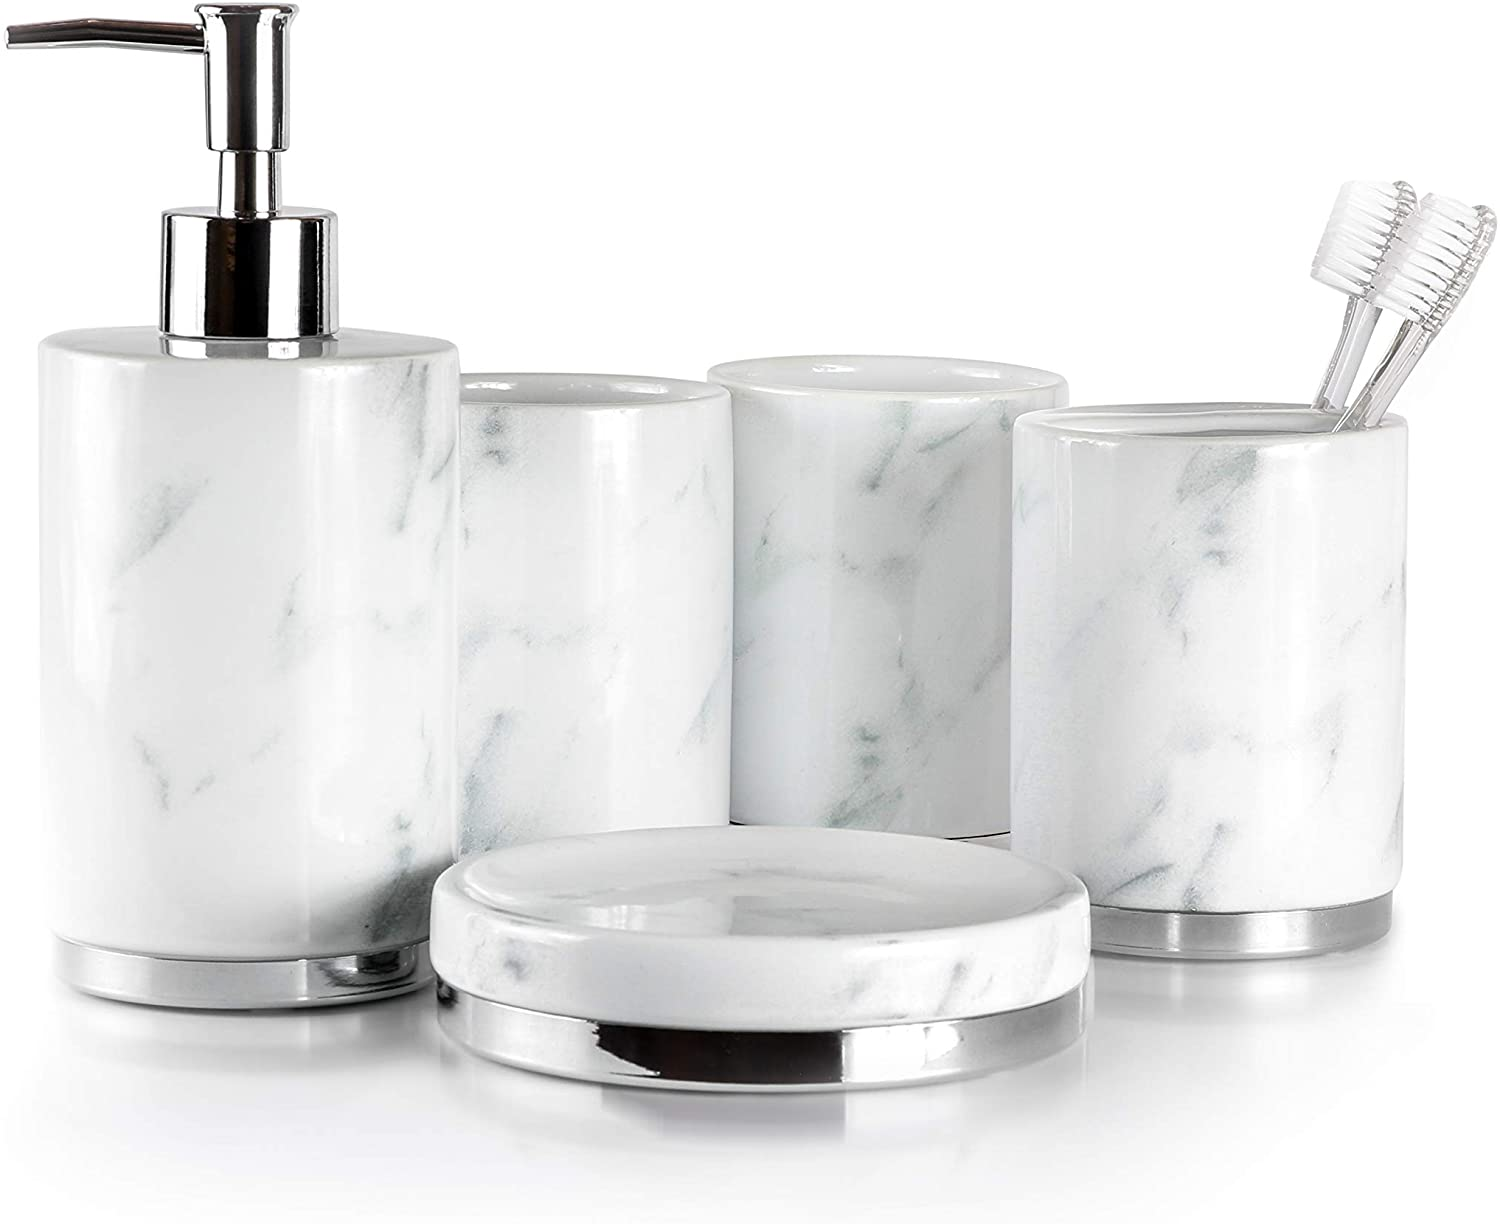 Amazon Com Willow Ivory Bathroom Accessories Set 5 Piece Ceramic Bath Set Toothbrush Holder Soap Dispenser Soap Dish 2 Tumblers Marble Collection Home Kitchen